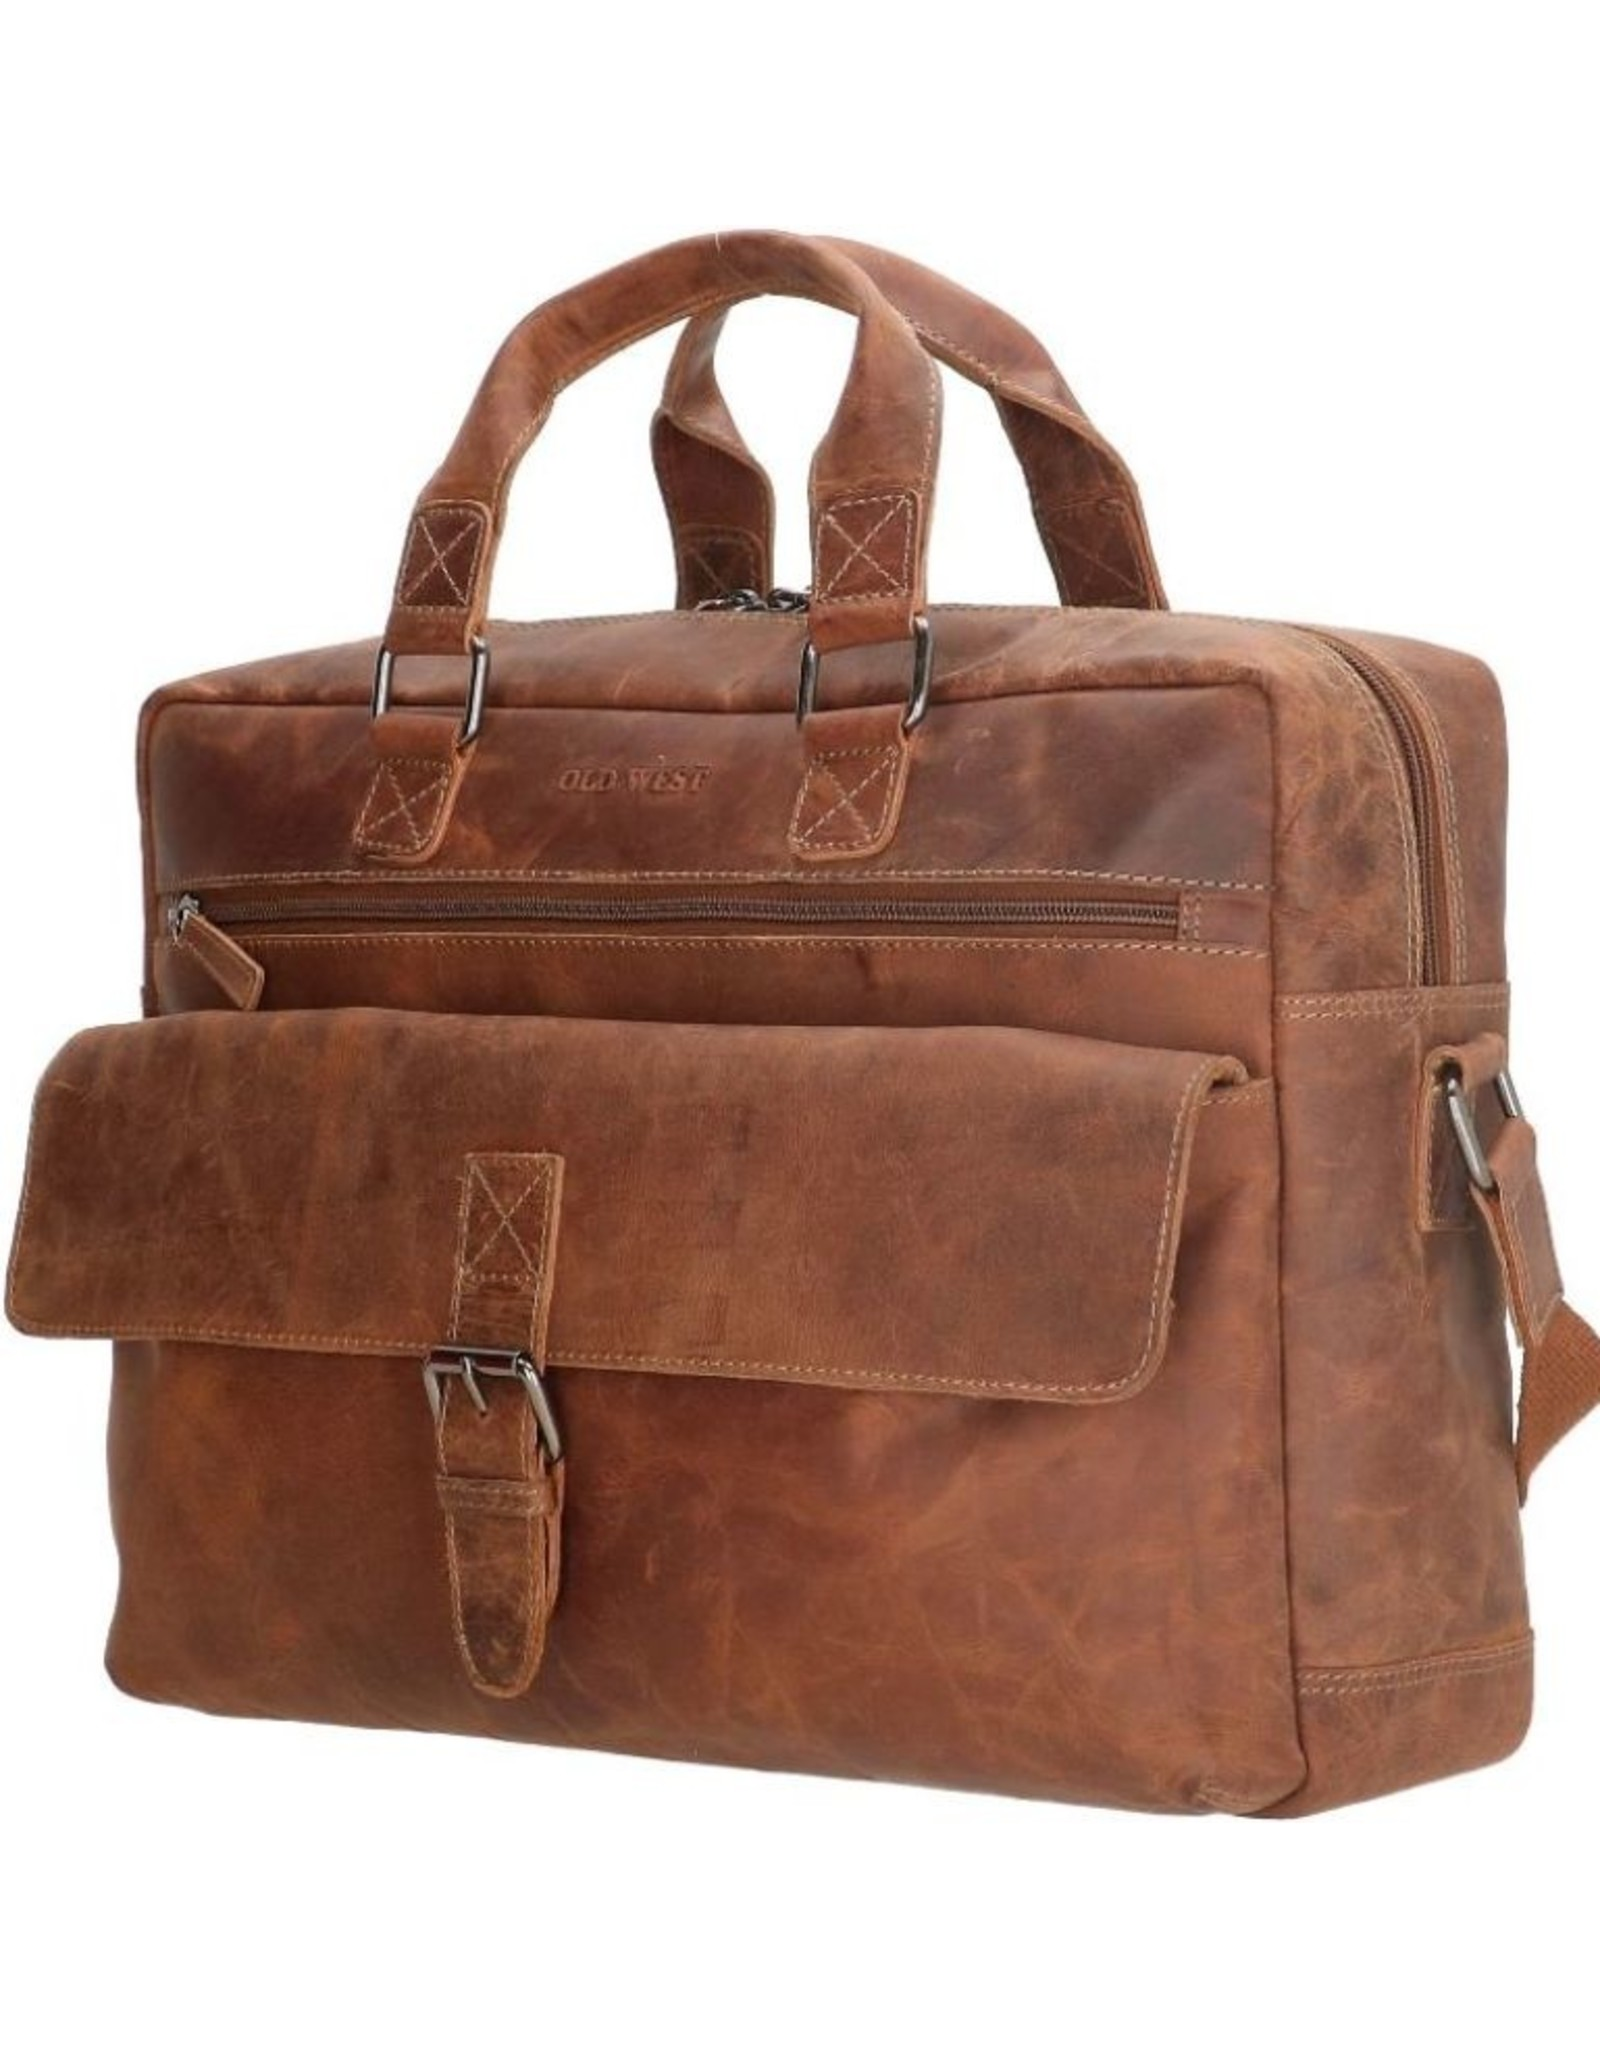 """Old West Leather laptop bags - Laptop bag Old West 15,6"""" tanned leather  (camel)"""